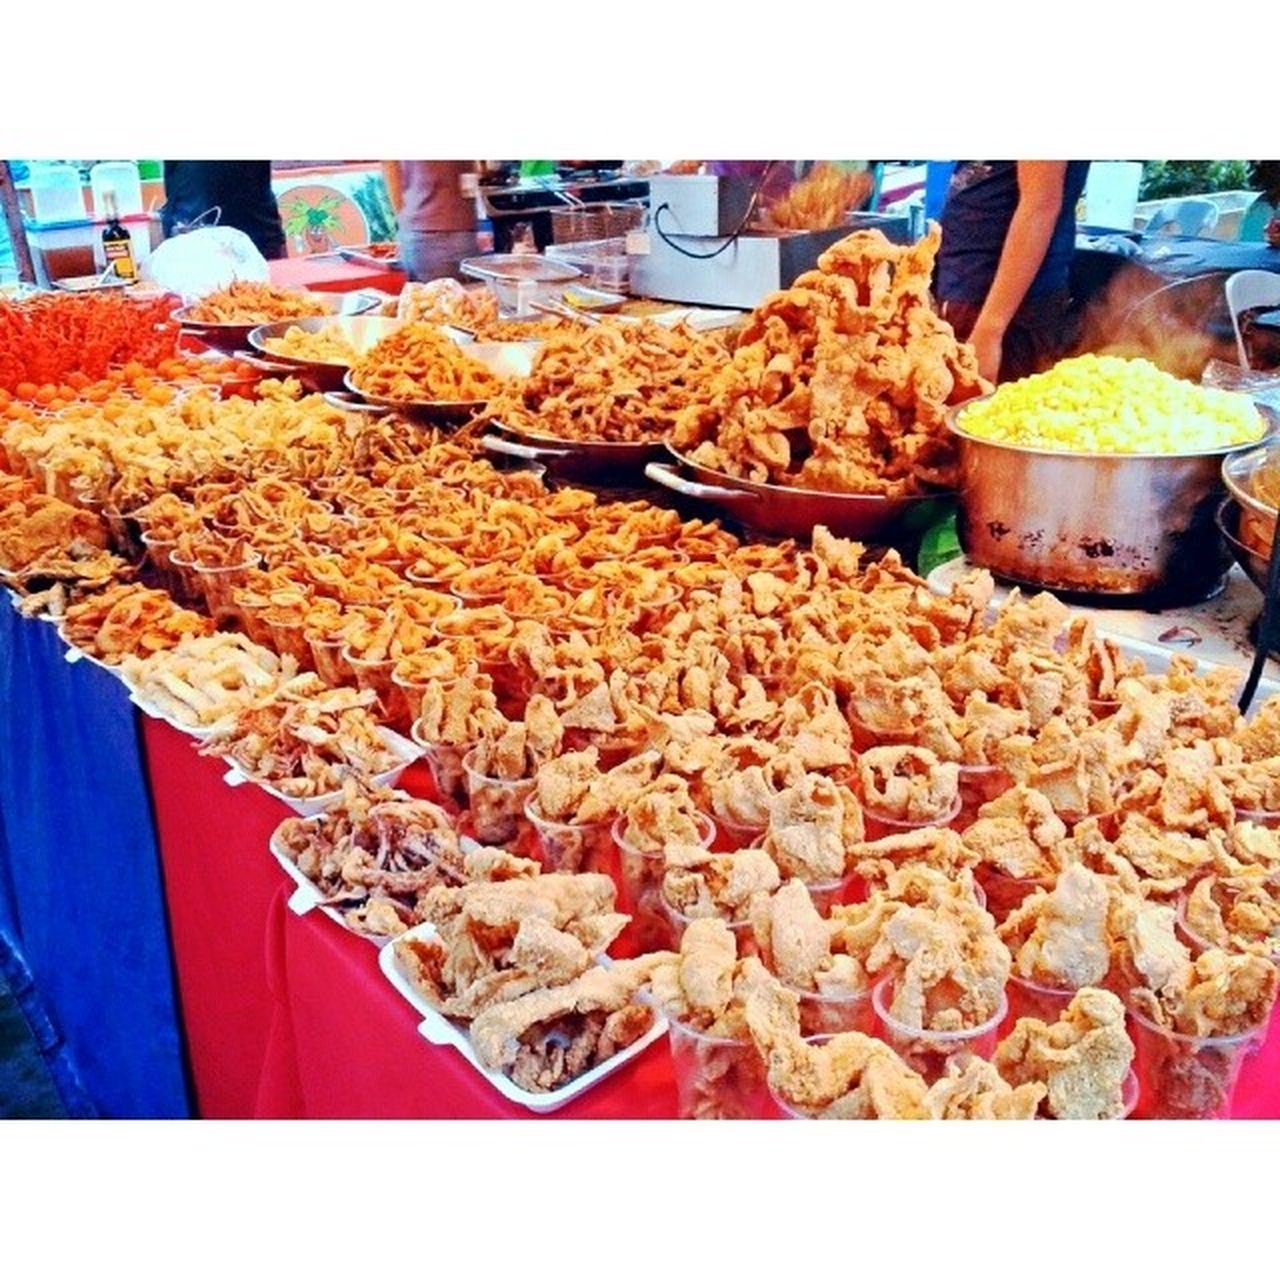 Lethally-delicious pinoy street food all on one table. Prepare your maintenance drugs for this one. Streetfood Pinoyfood Pagkaingpinoy Itsmorefuninthephilippines friedfood delicious yummy banchetto quezoncity cubao sundays sundaydinner